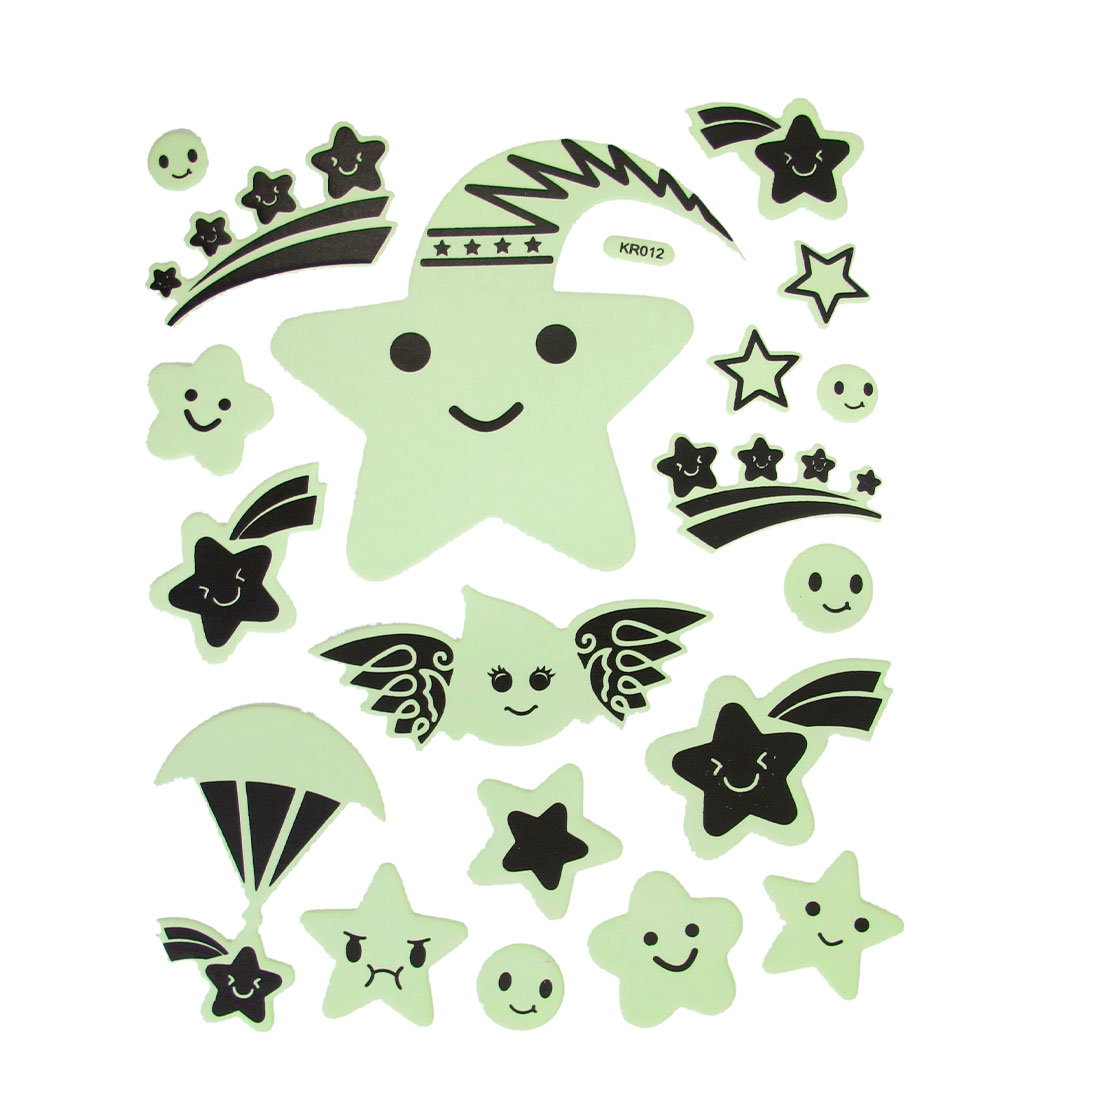 19 Pcs Cartoon Clound Stars Smilling Face Shape Luminous Stickers Wall Decor